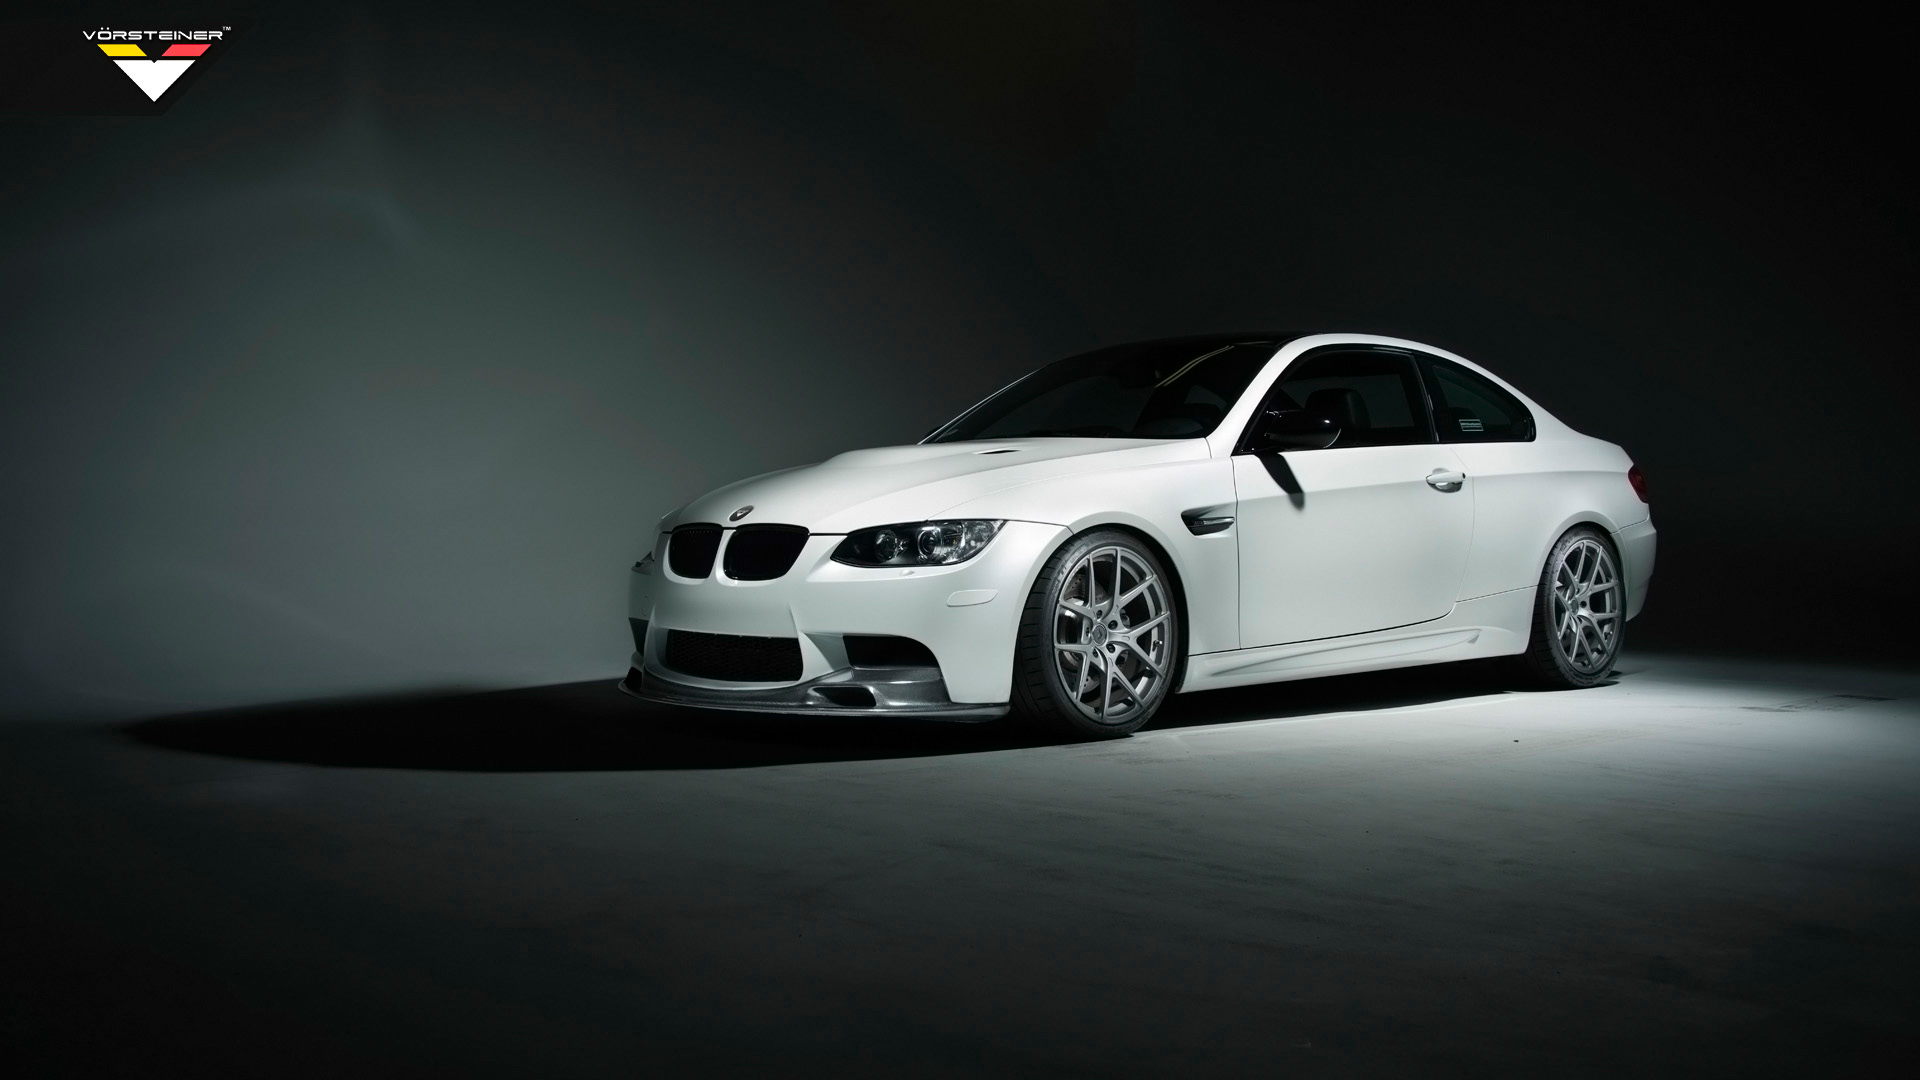 2014 Bmw E92 M3 By Vorsteiner Wallpaper Hd Car Wallpapers